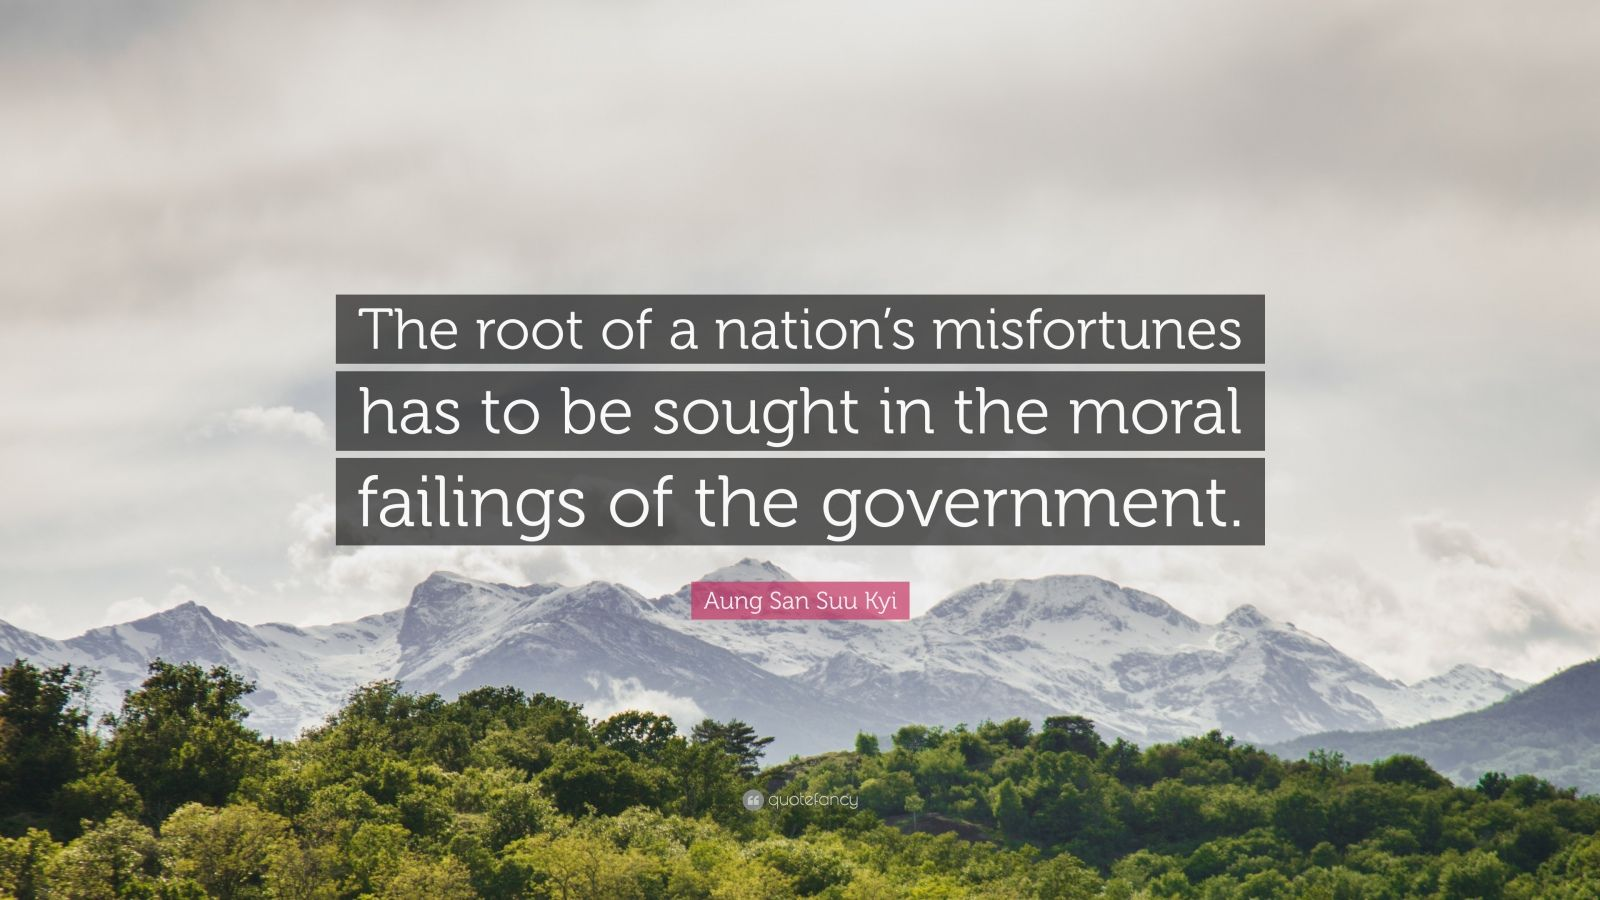 """Aung San Suu Kyi Quote: """"The root of a nation's misfortunes has to be sought in the moral failings of the government."""""""